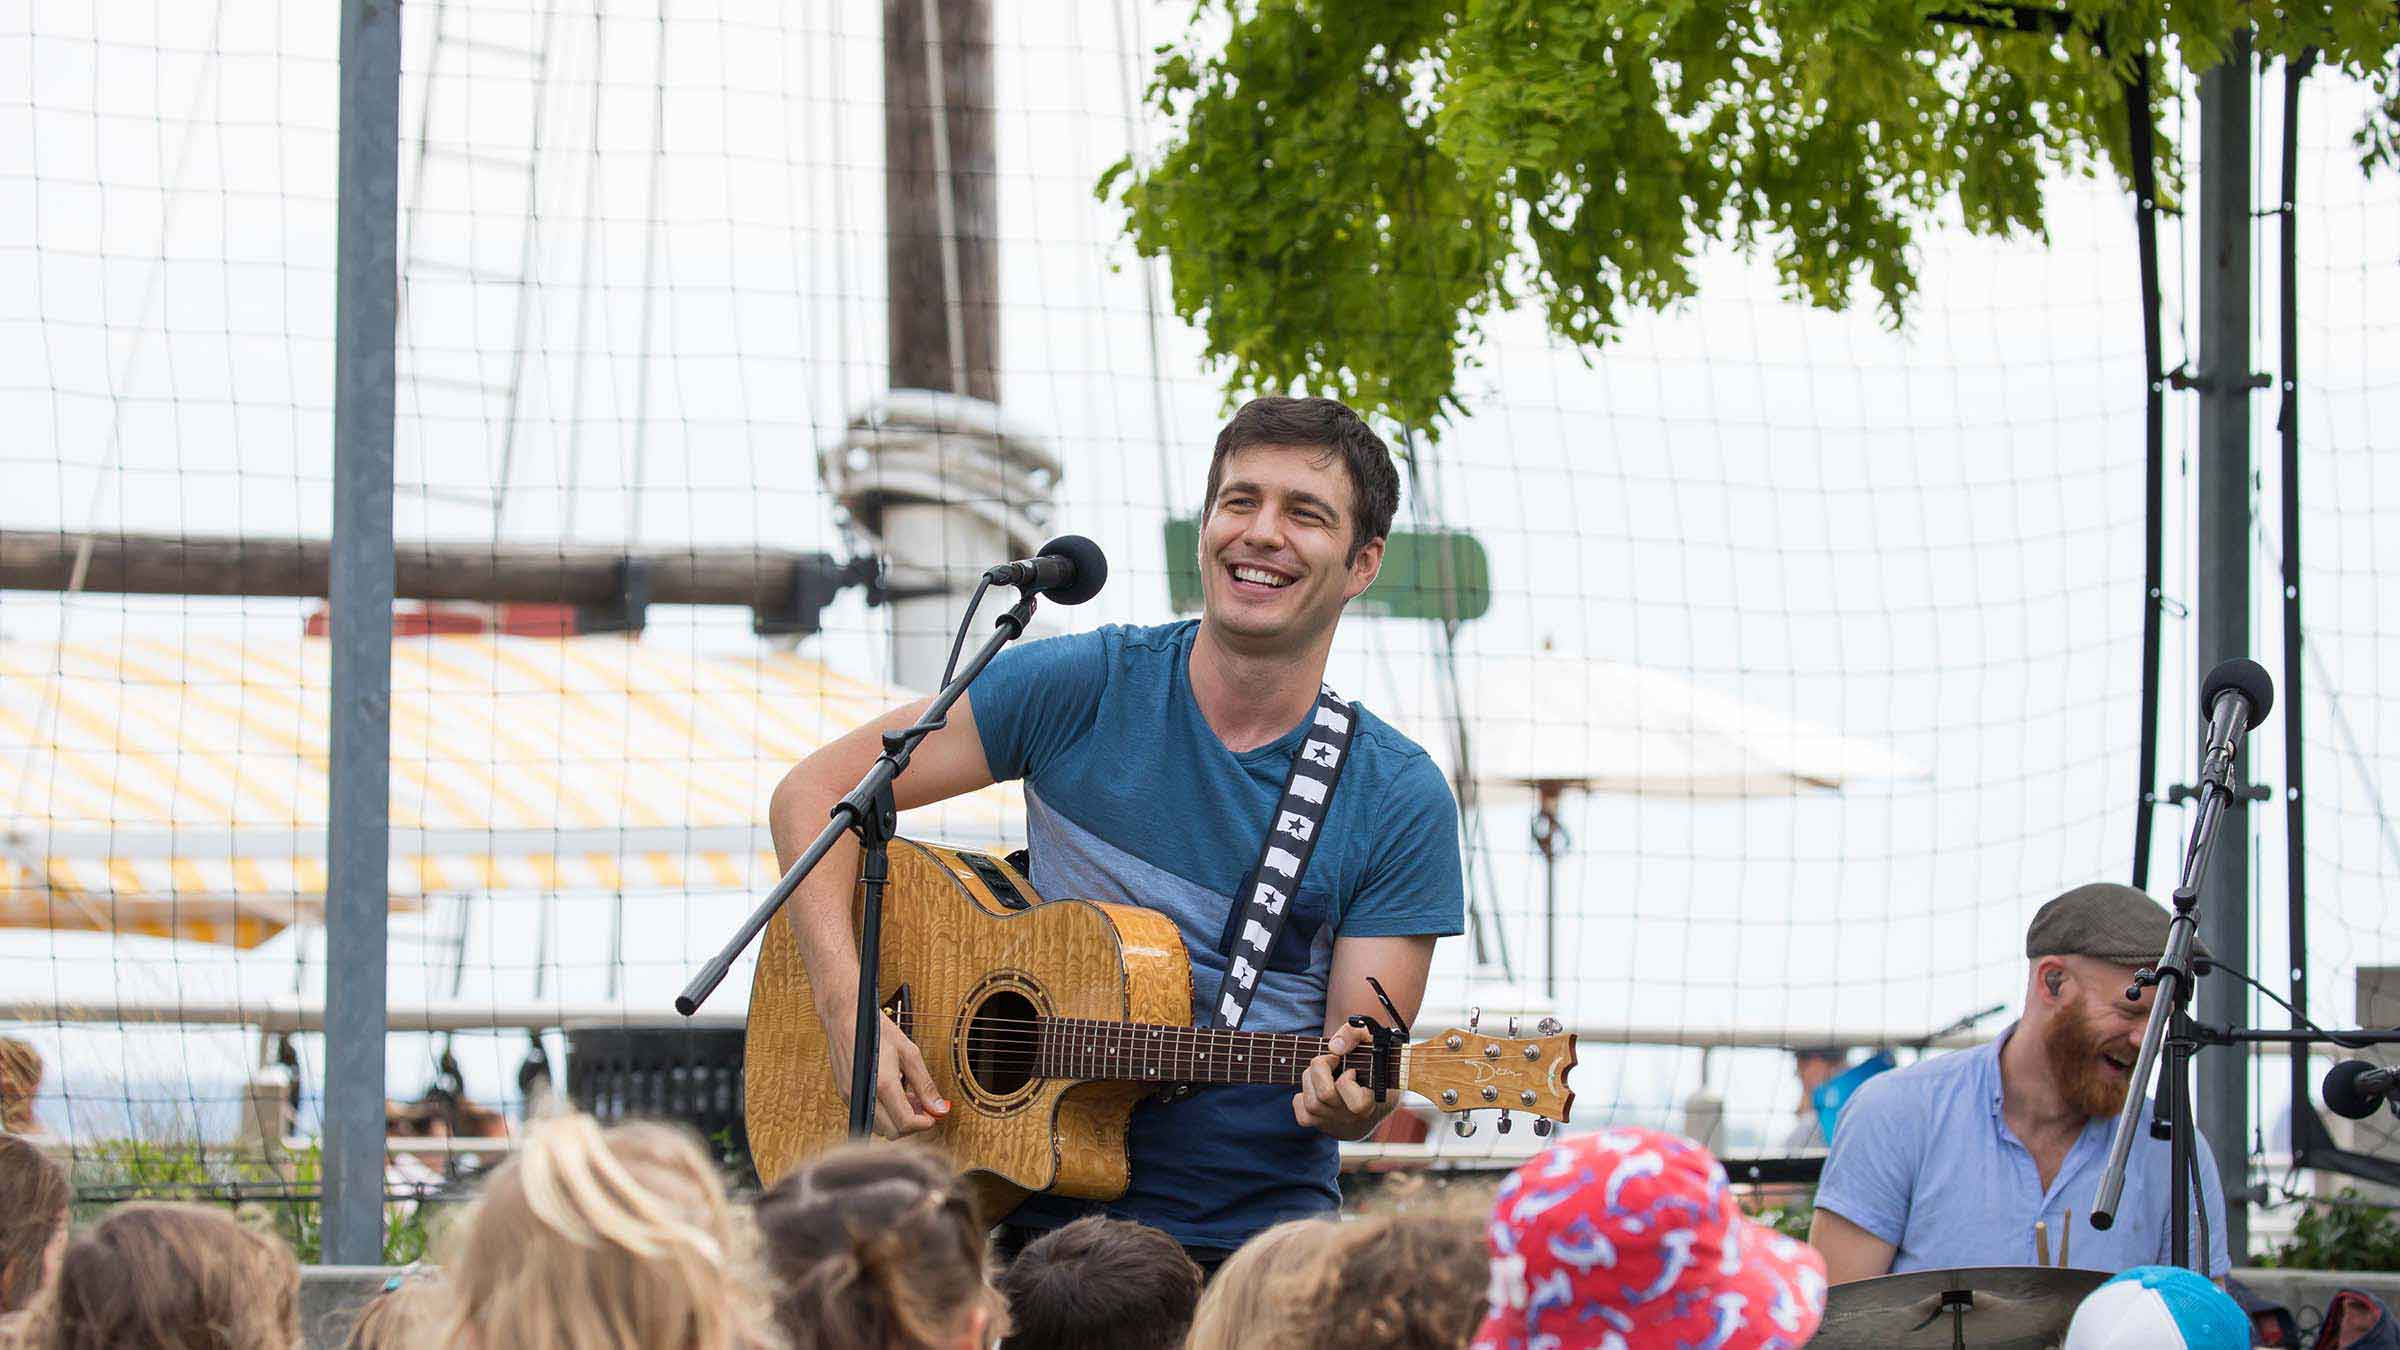 Tim Kubart strums a guitar and smiles at the audience